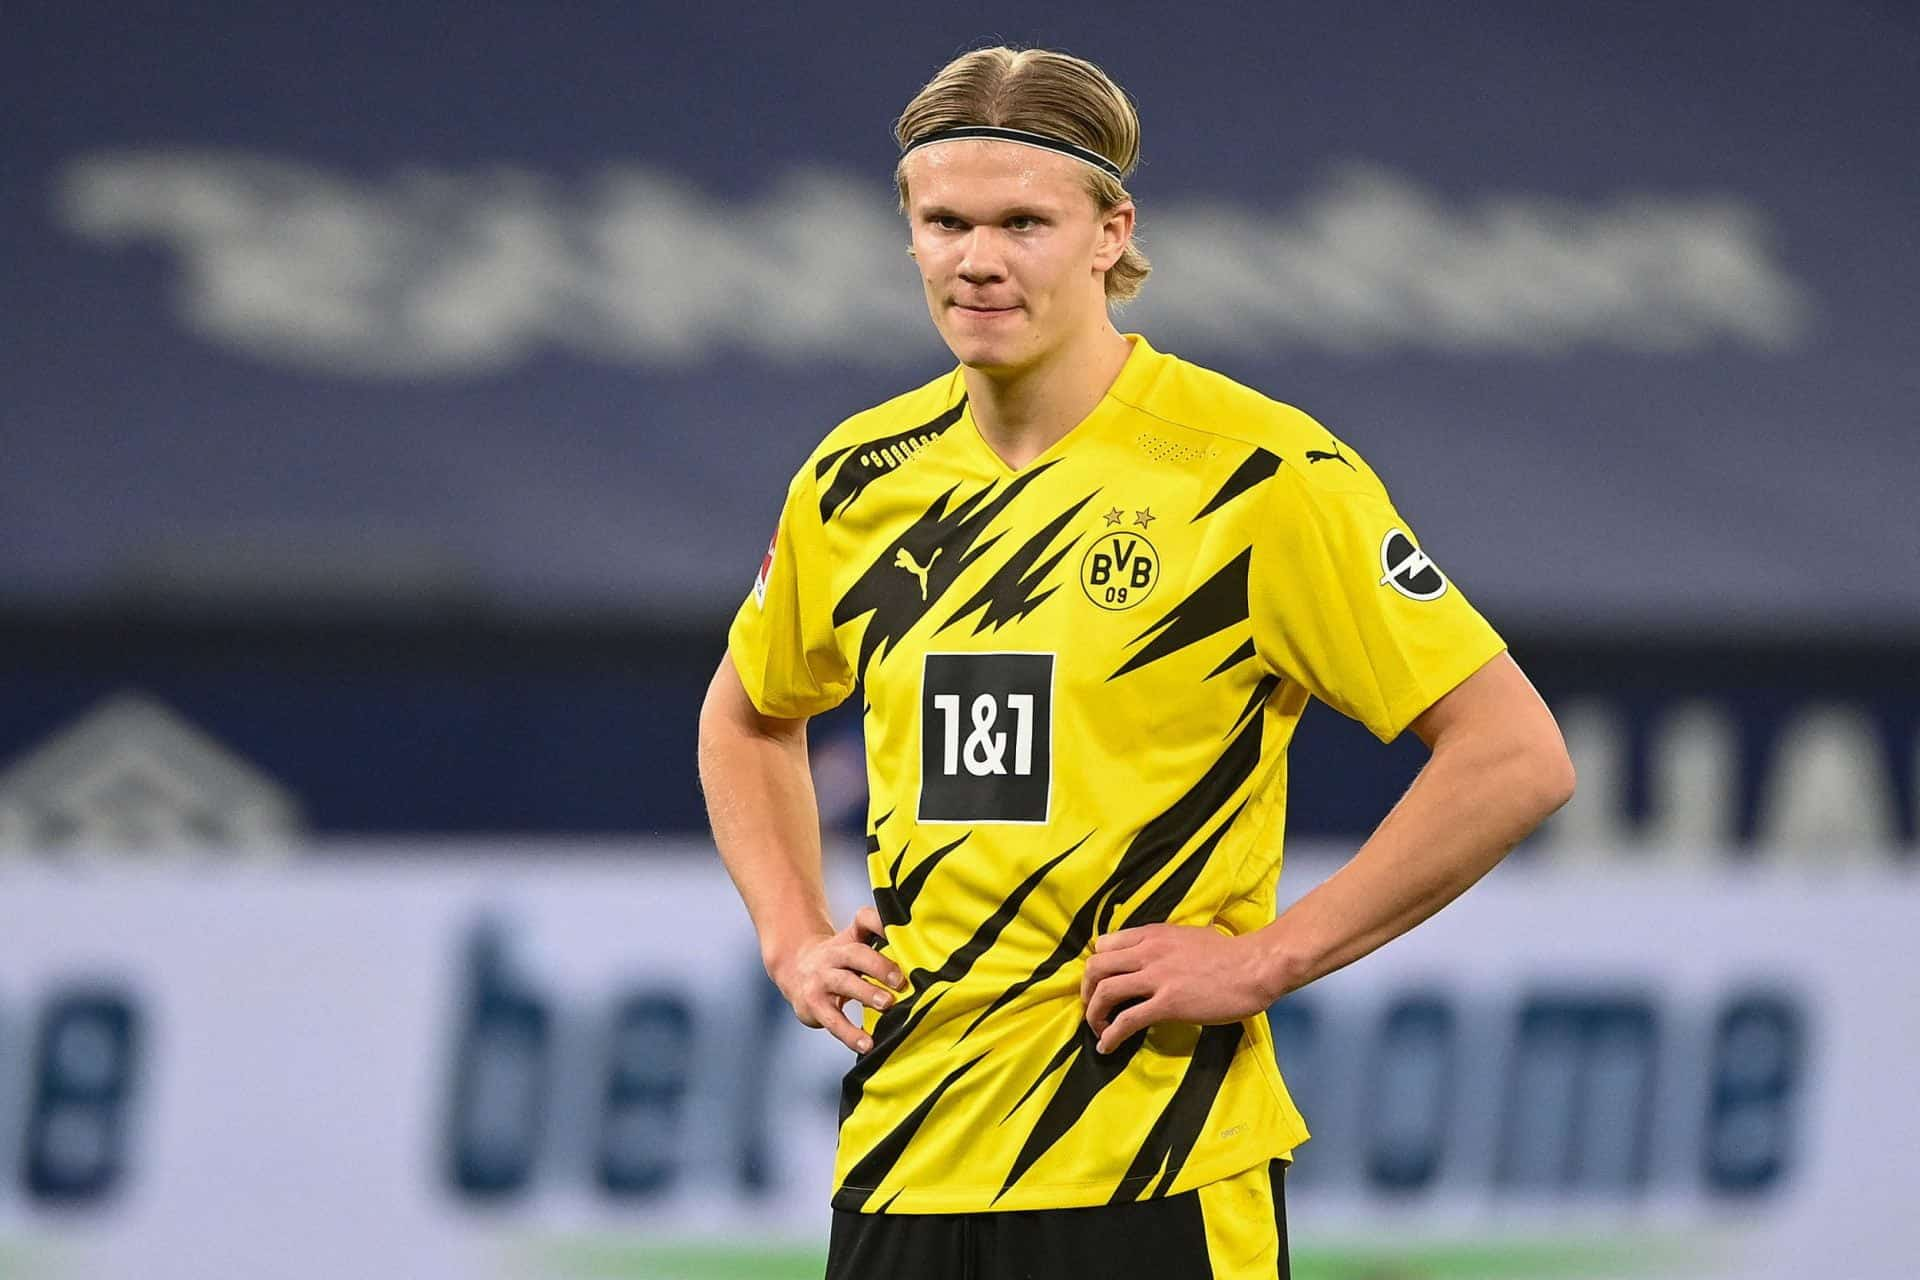 Football clubs in a fight to bring Erling Haaland to their club